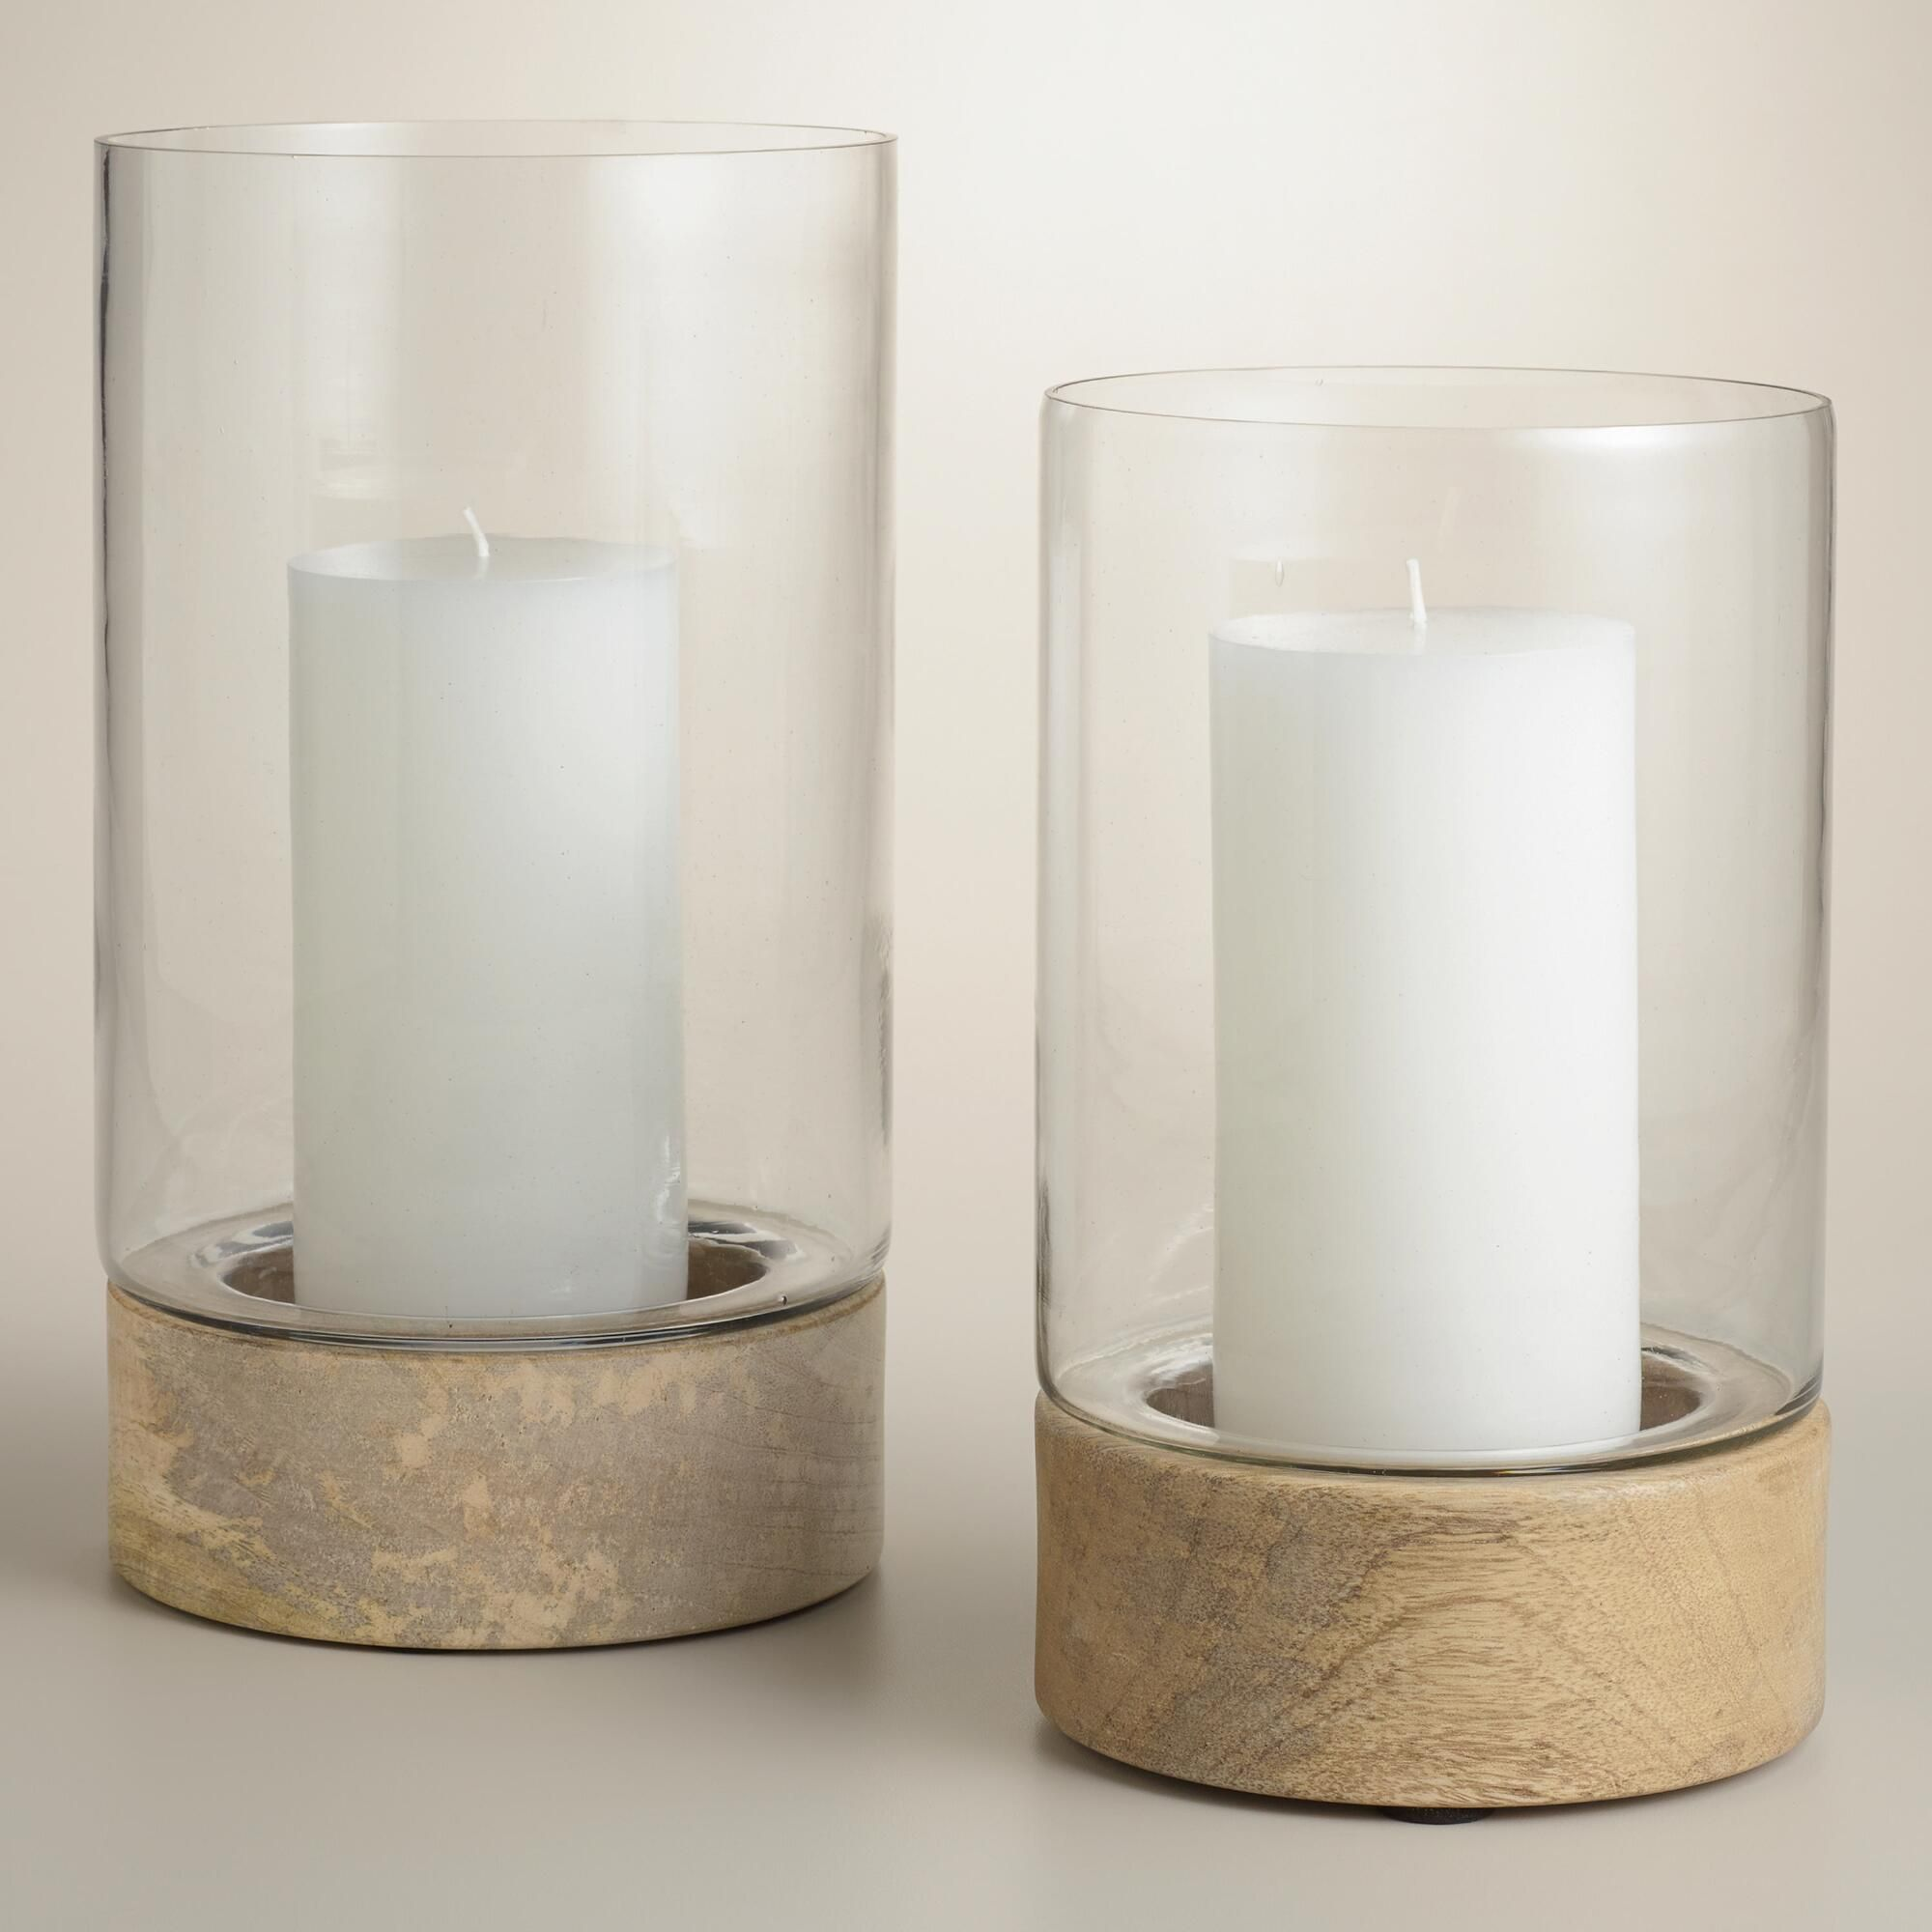 Form meets function with our natural wood base glass hurricane form meets function with our natural wood base glass hurricane candleholders reviewsmspy